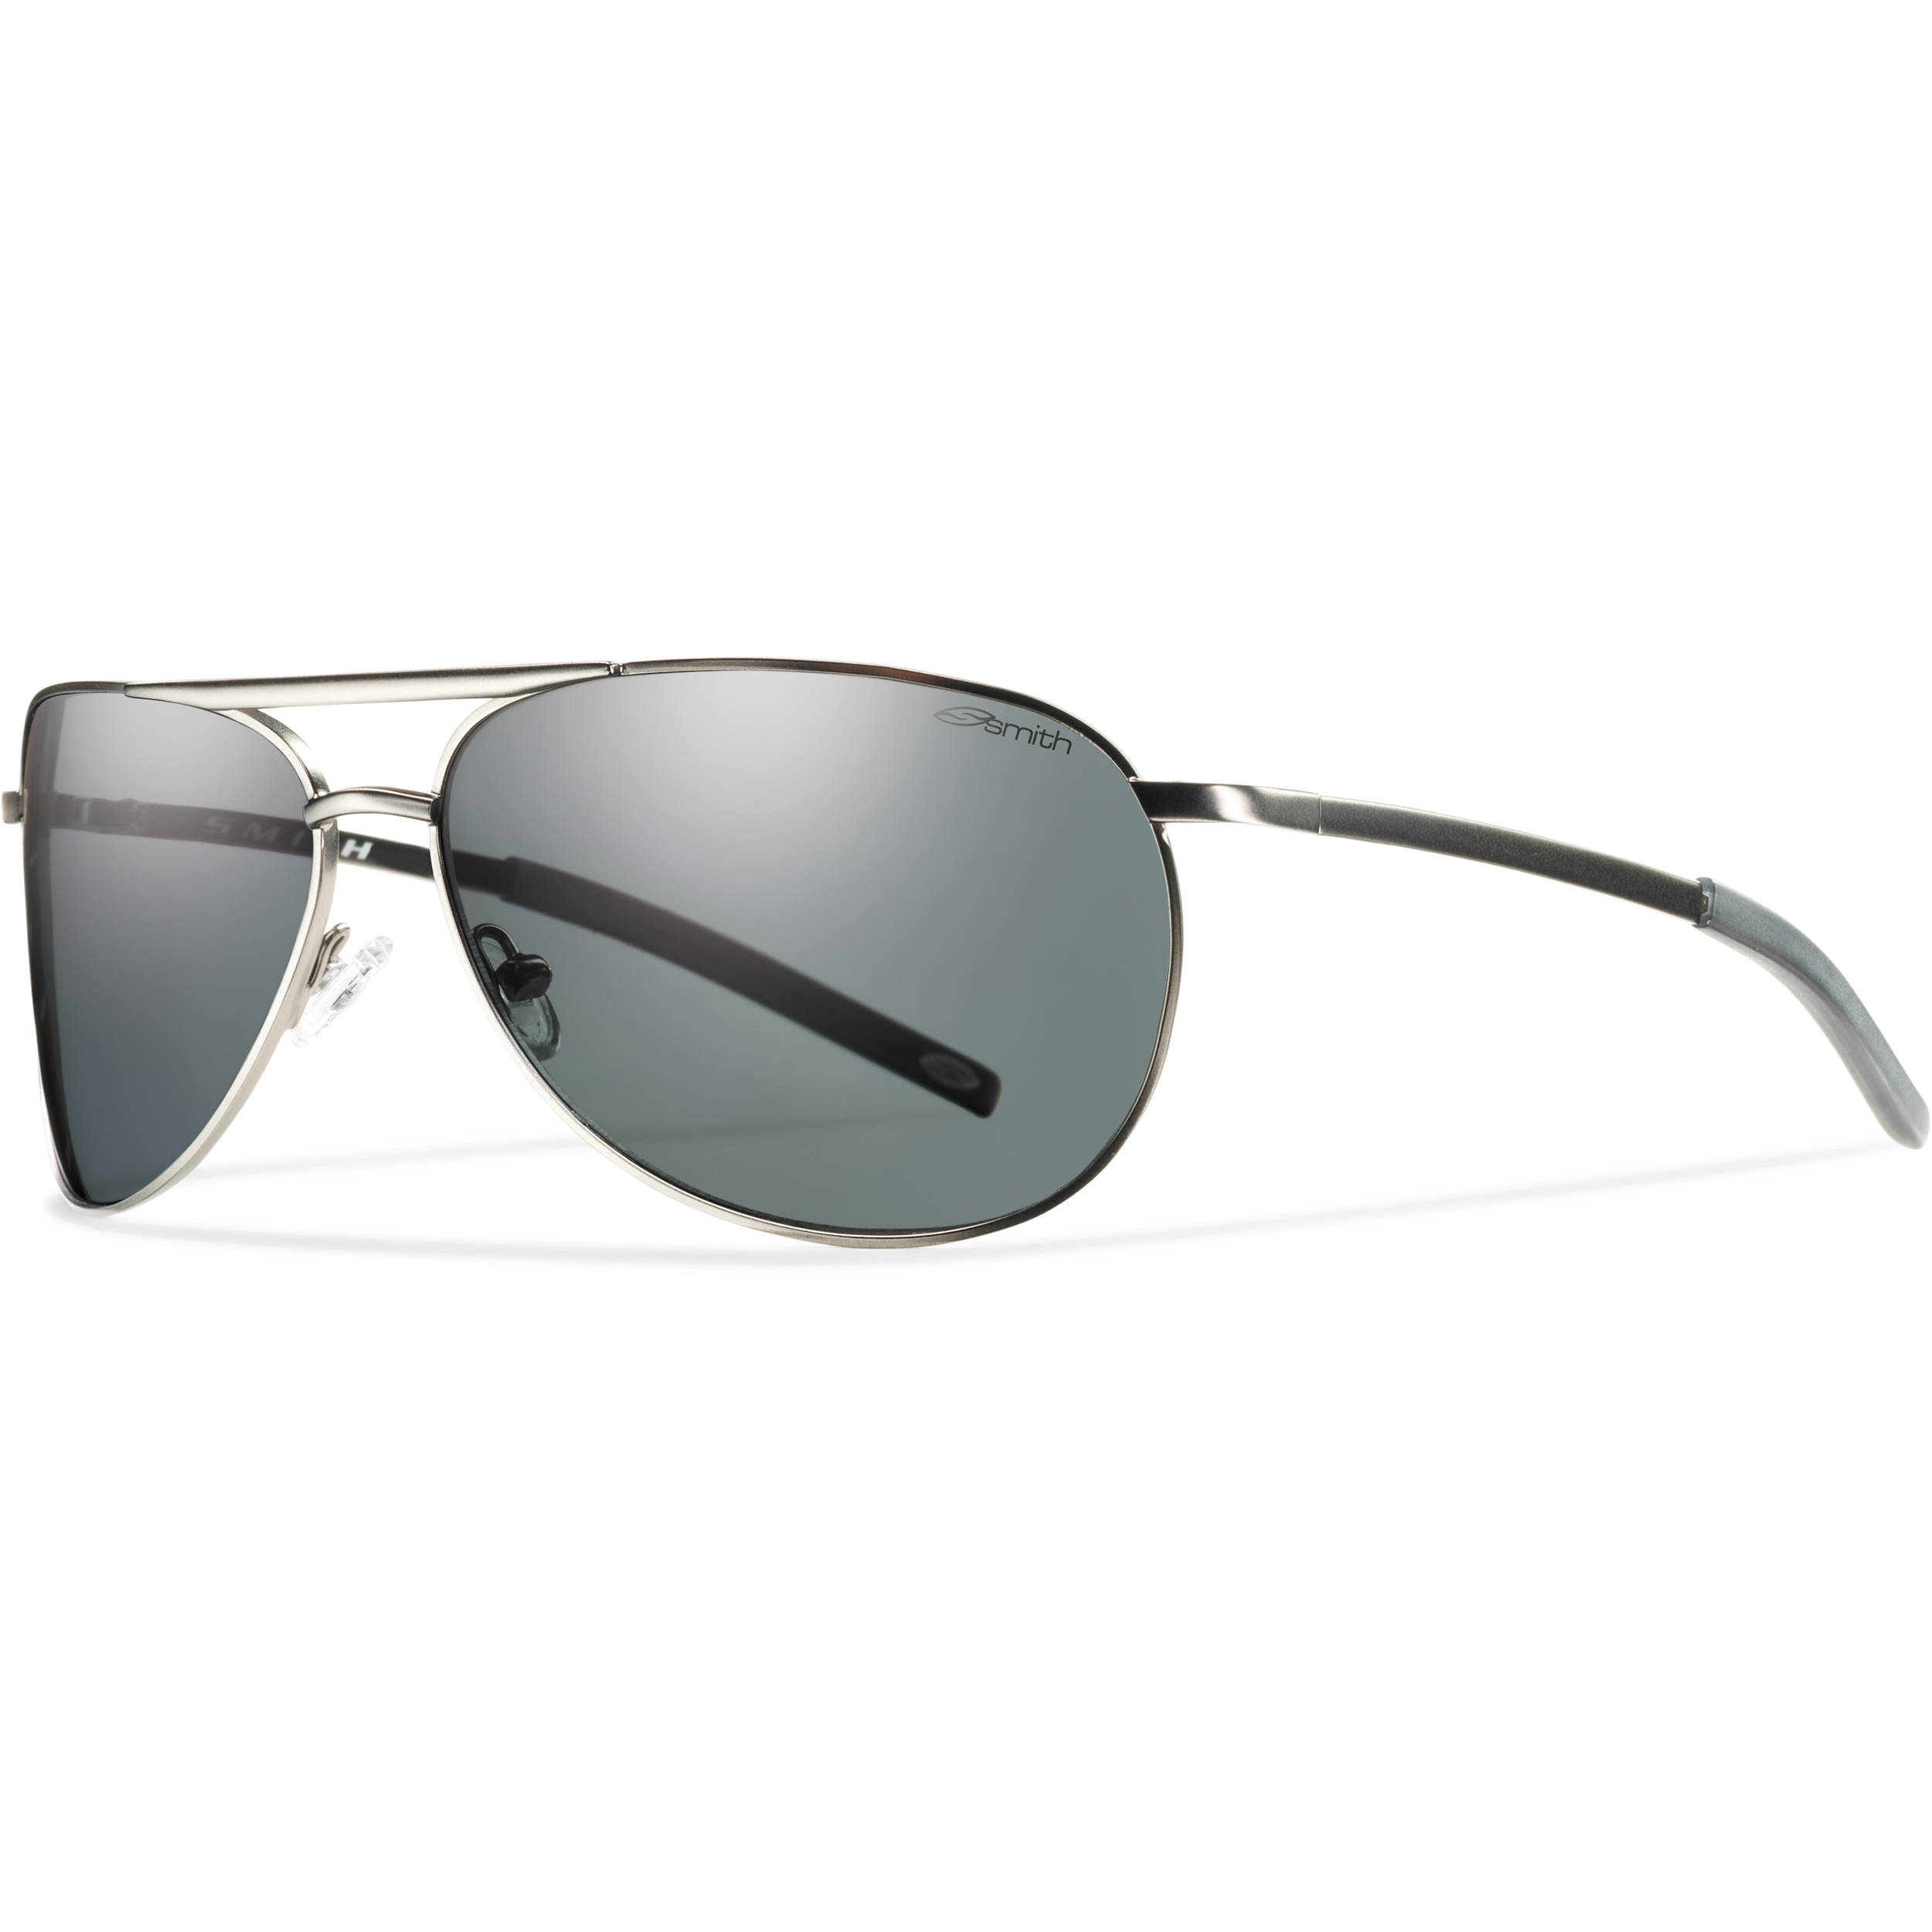 f6dc77a1ae Smith Serpico Slim Polarized Sunglasses « Heritage Malta